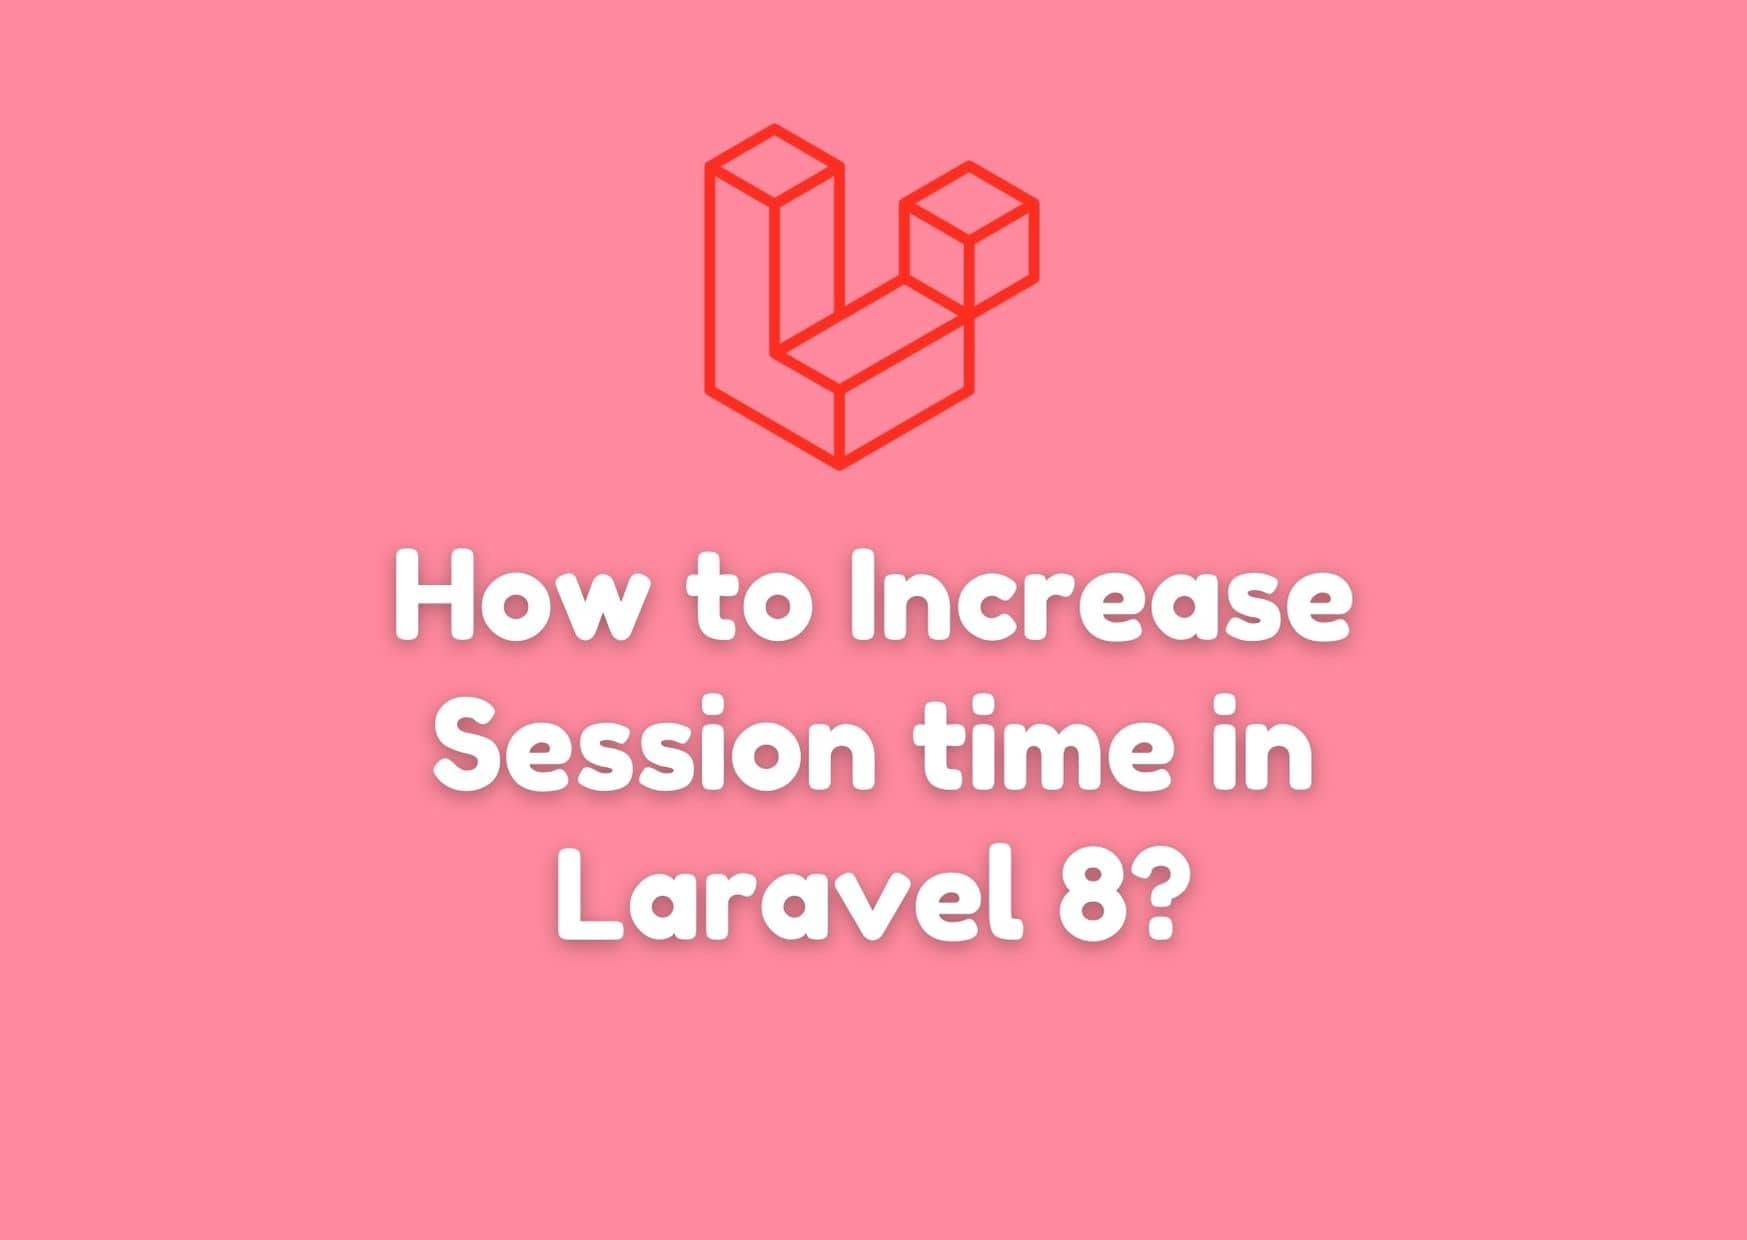 [Lifetime Session] How to Increase Session Timeout Limit in Laravel 8?